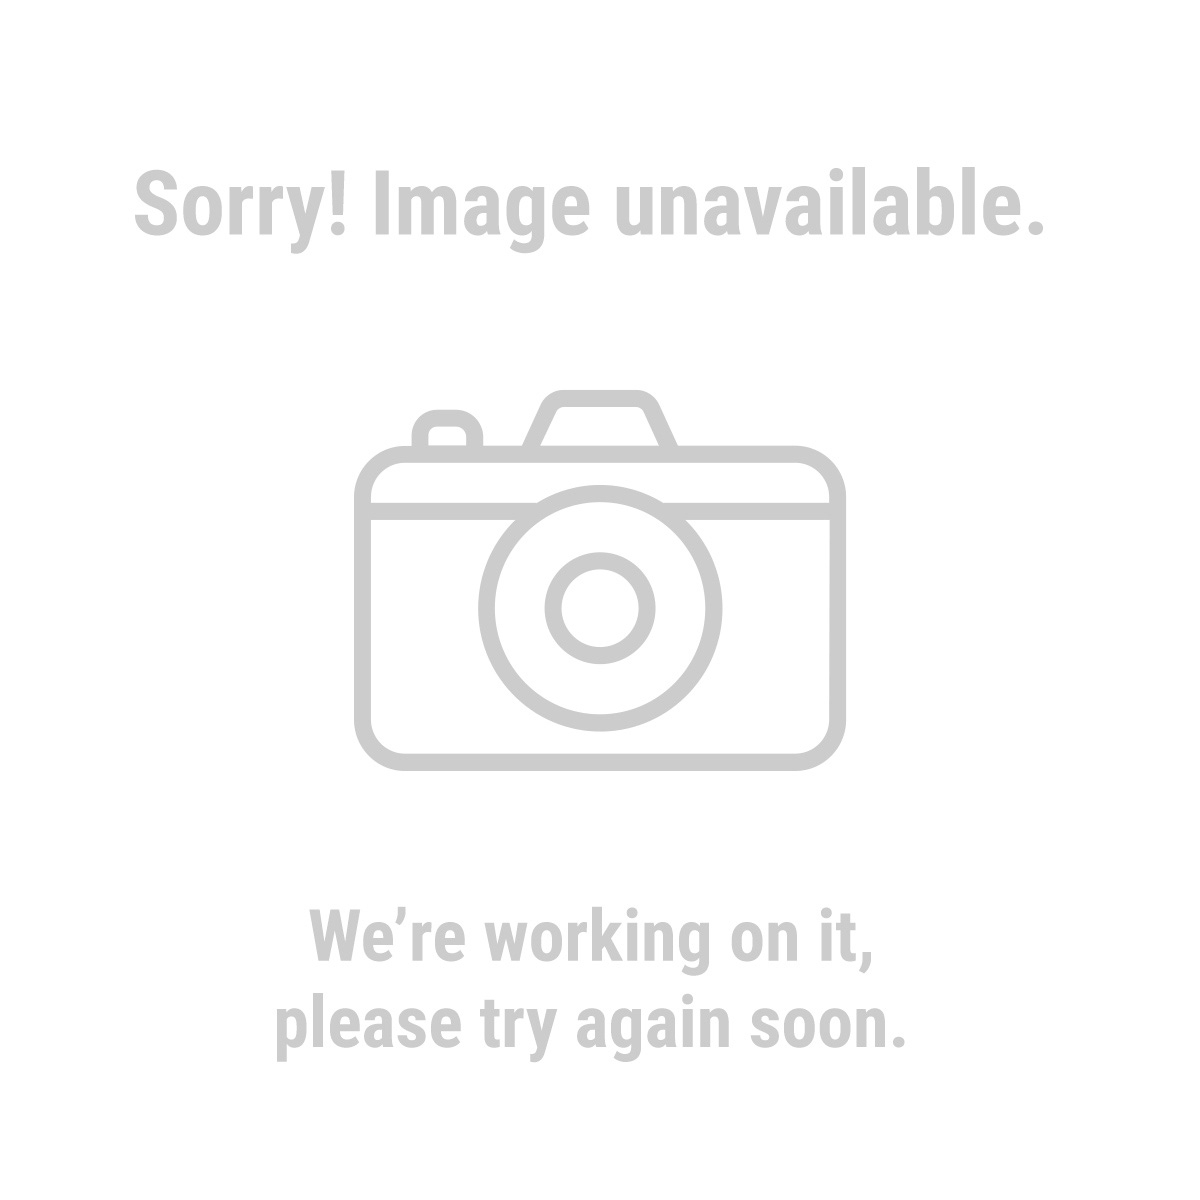 Warrior 61312 6 Piece Triangle Sandpaper Assortment for Wood